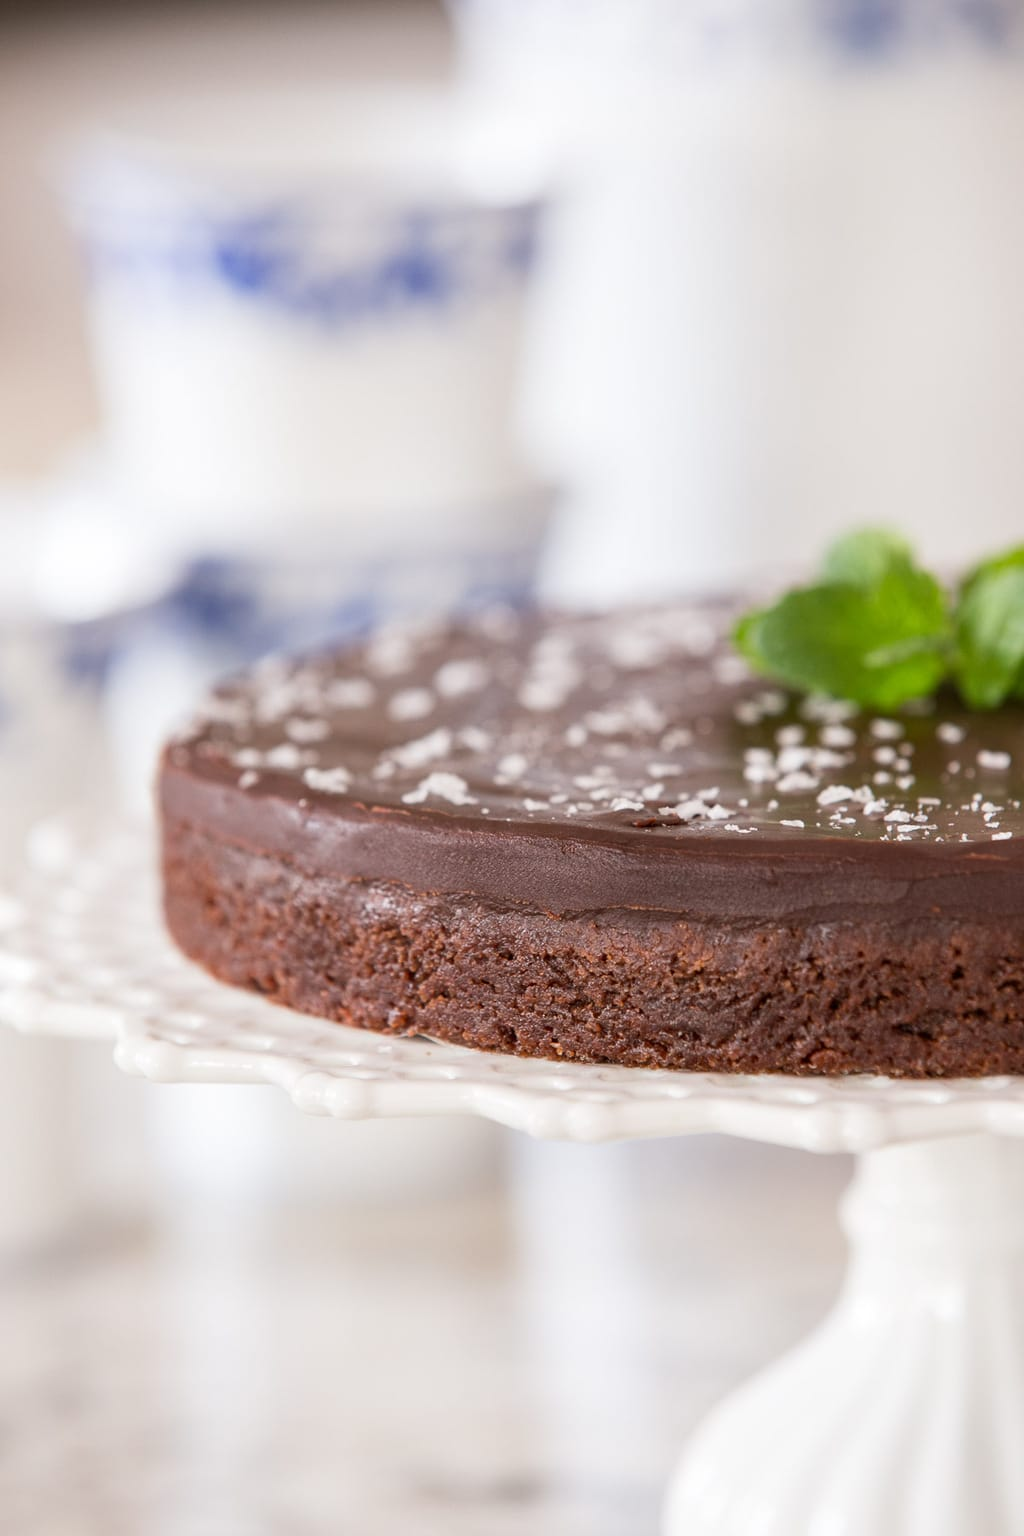 Photo of a Swedish Sticky Chocolate Cake (Kladdkaka) on a white cake pedestal stand garnished with a sprig of fresh mint.